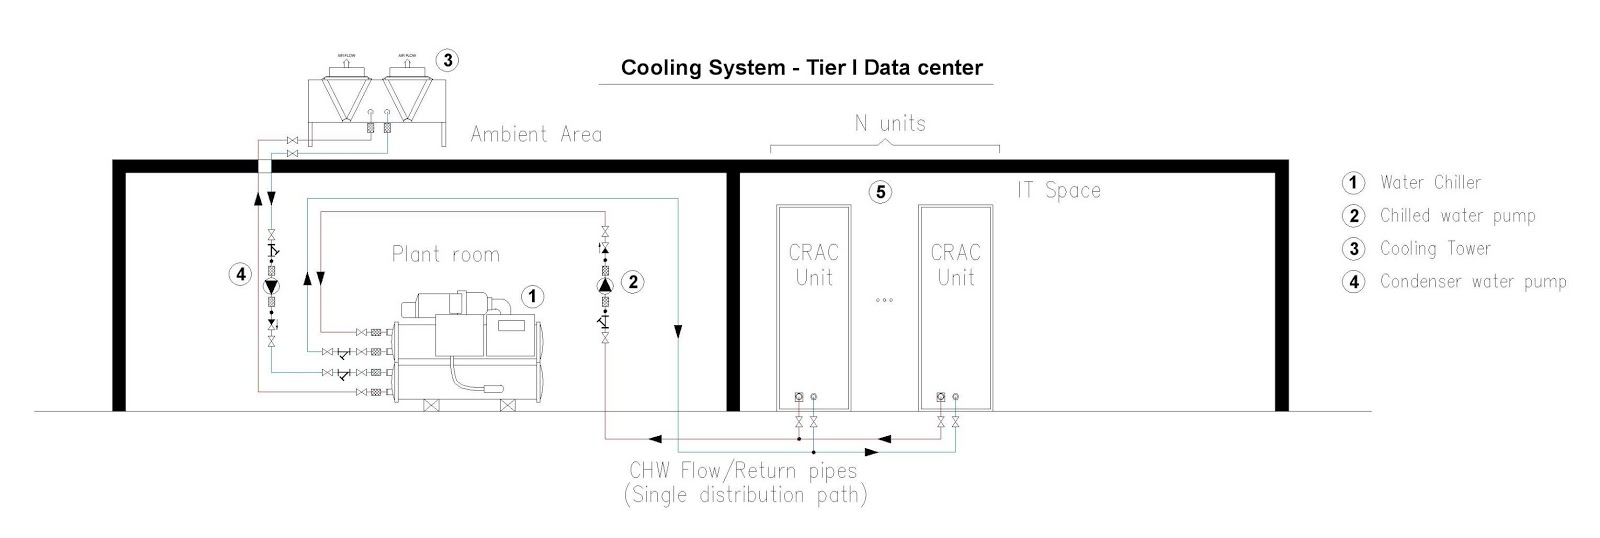 02 a tier i water system crac unit contain single or more running capacity components this includes a combination of water chiller cooling tower  [ 1600 x 538 Pixel ]